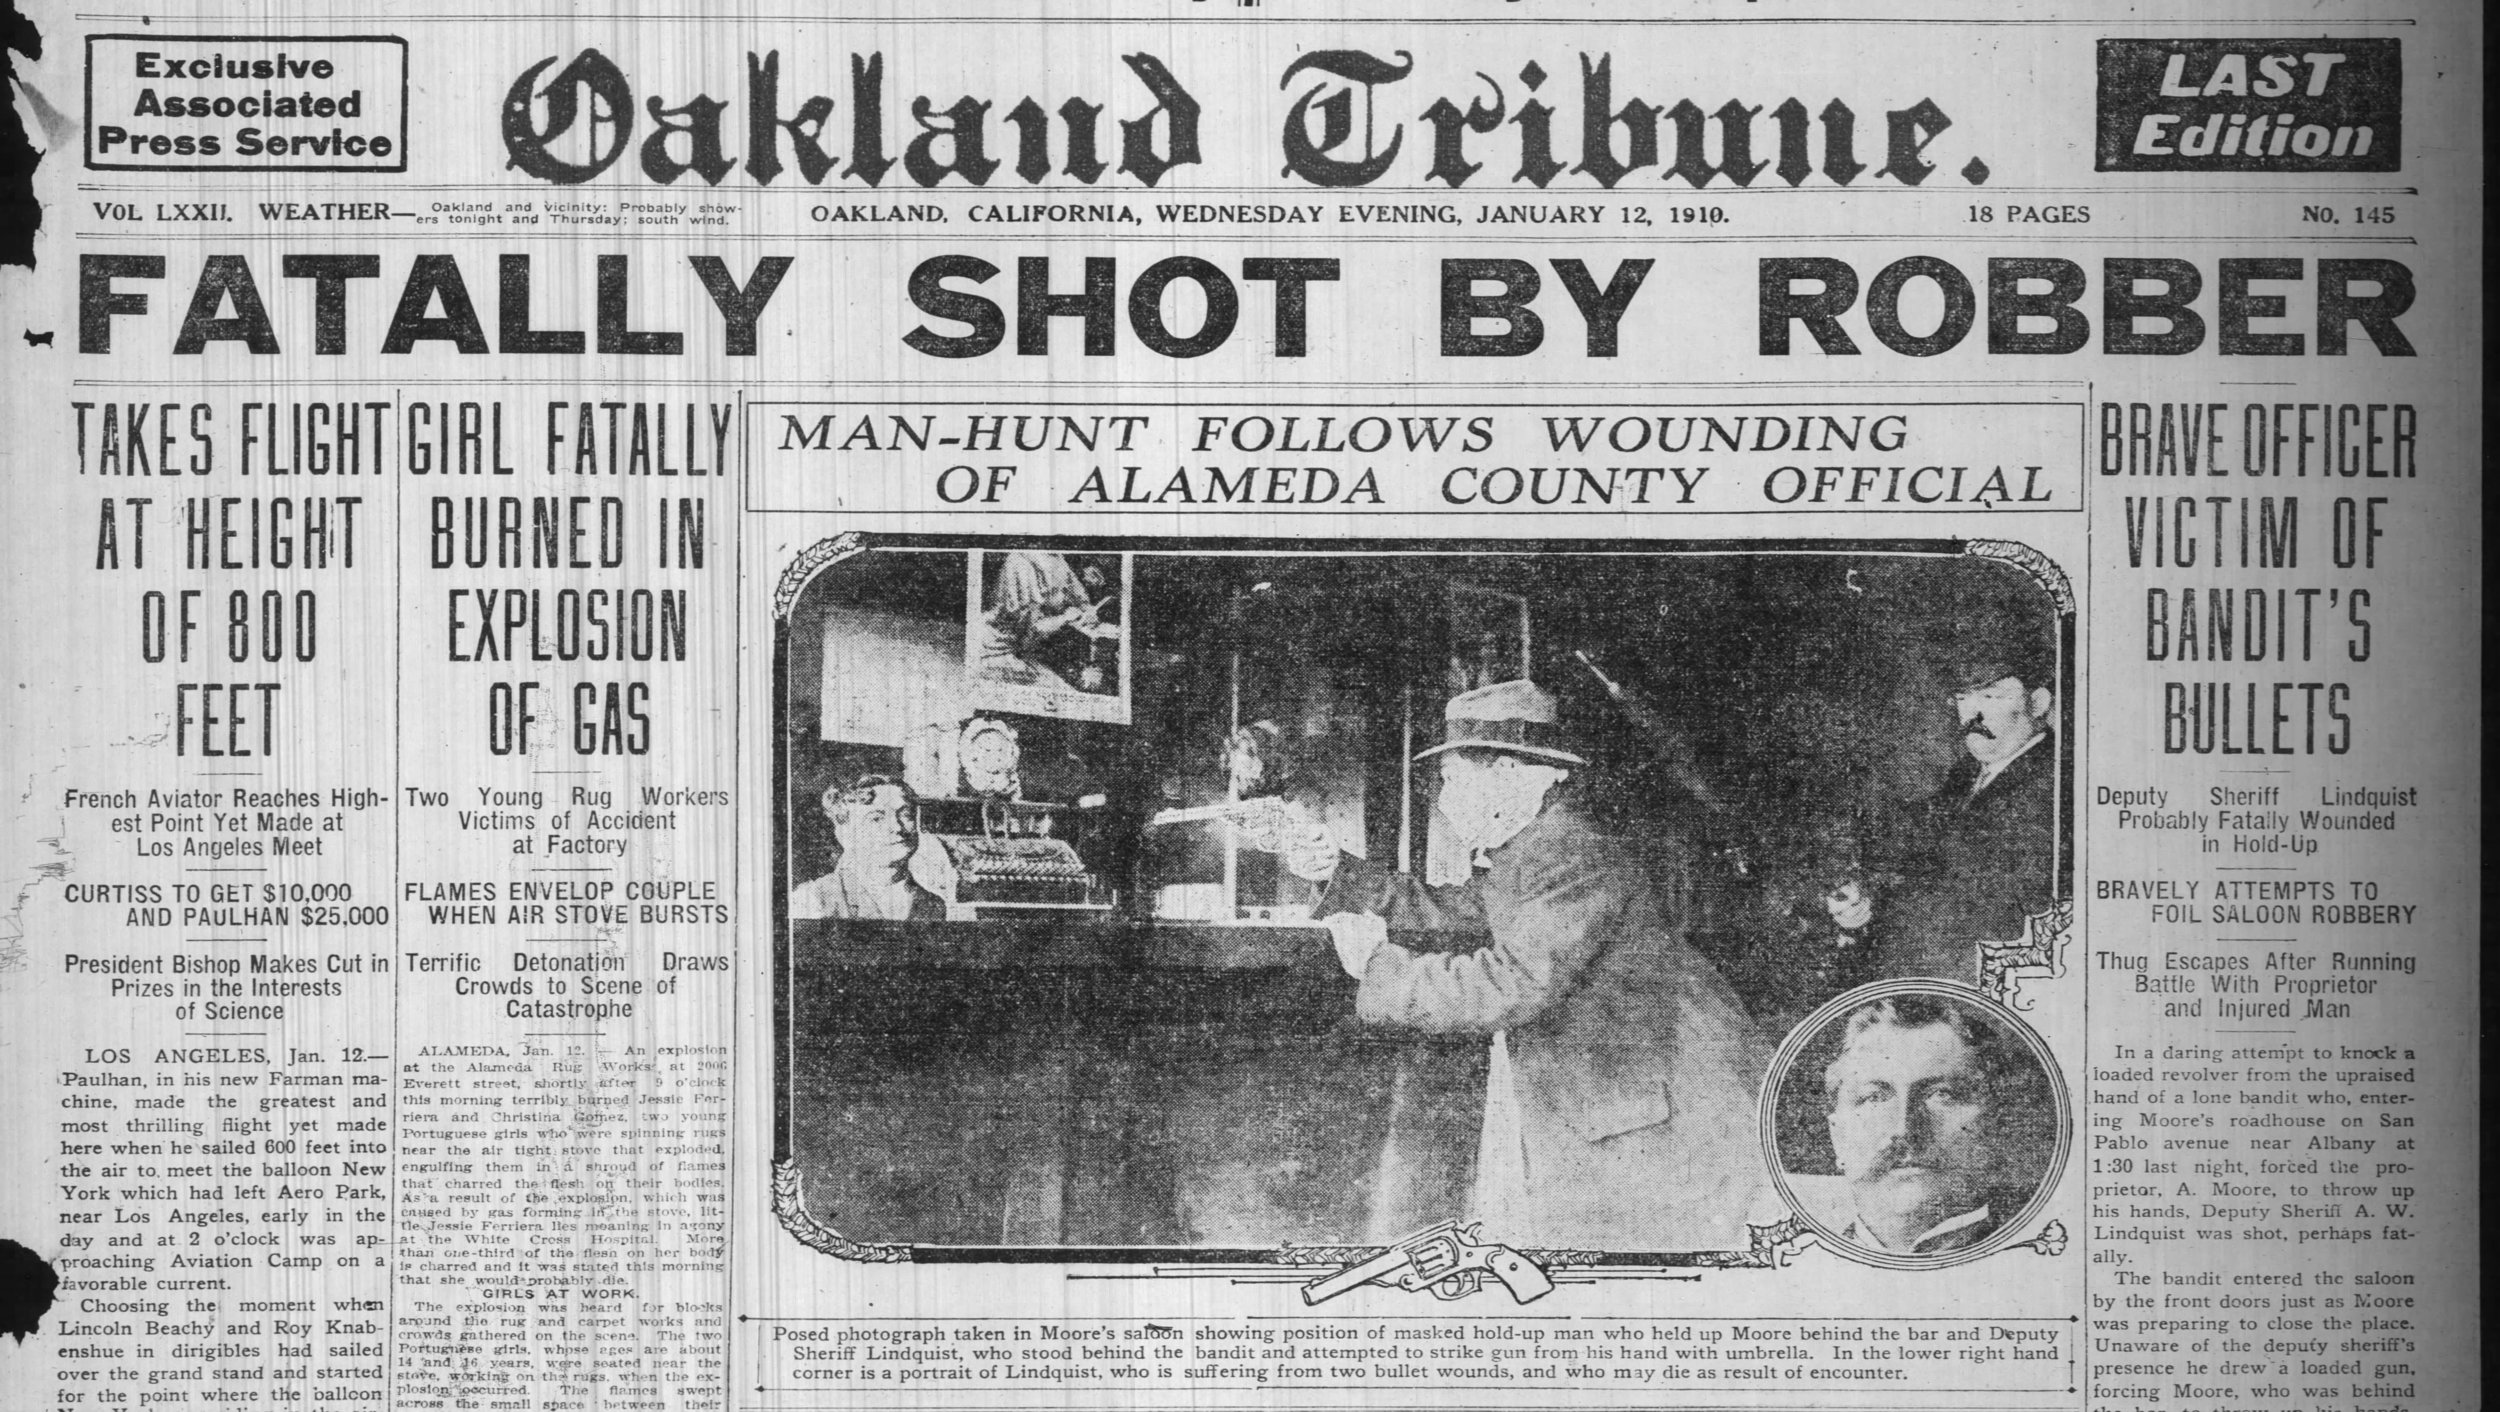 The front page included a reenactment photo of the incident